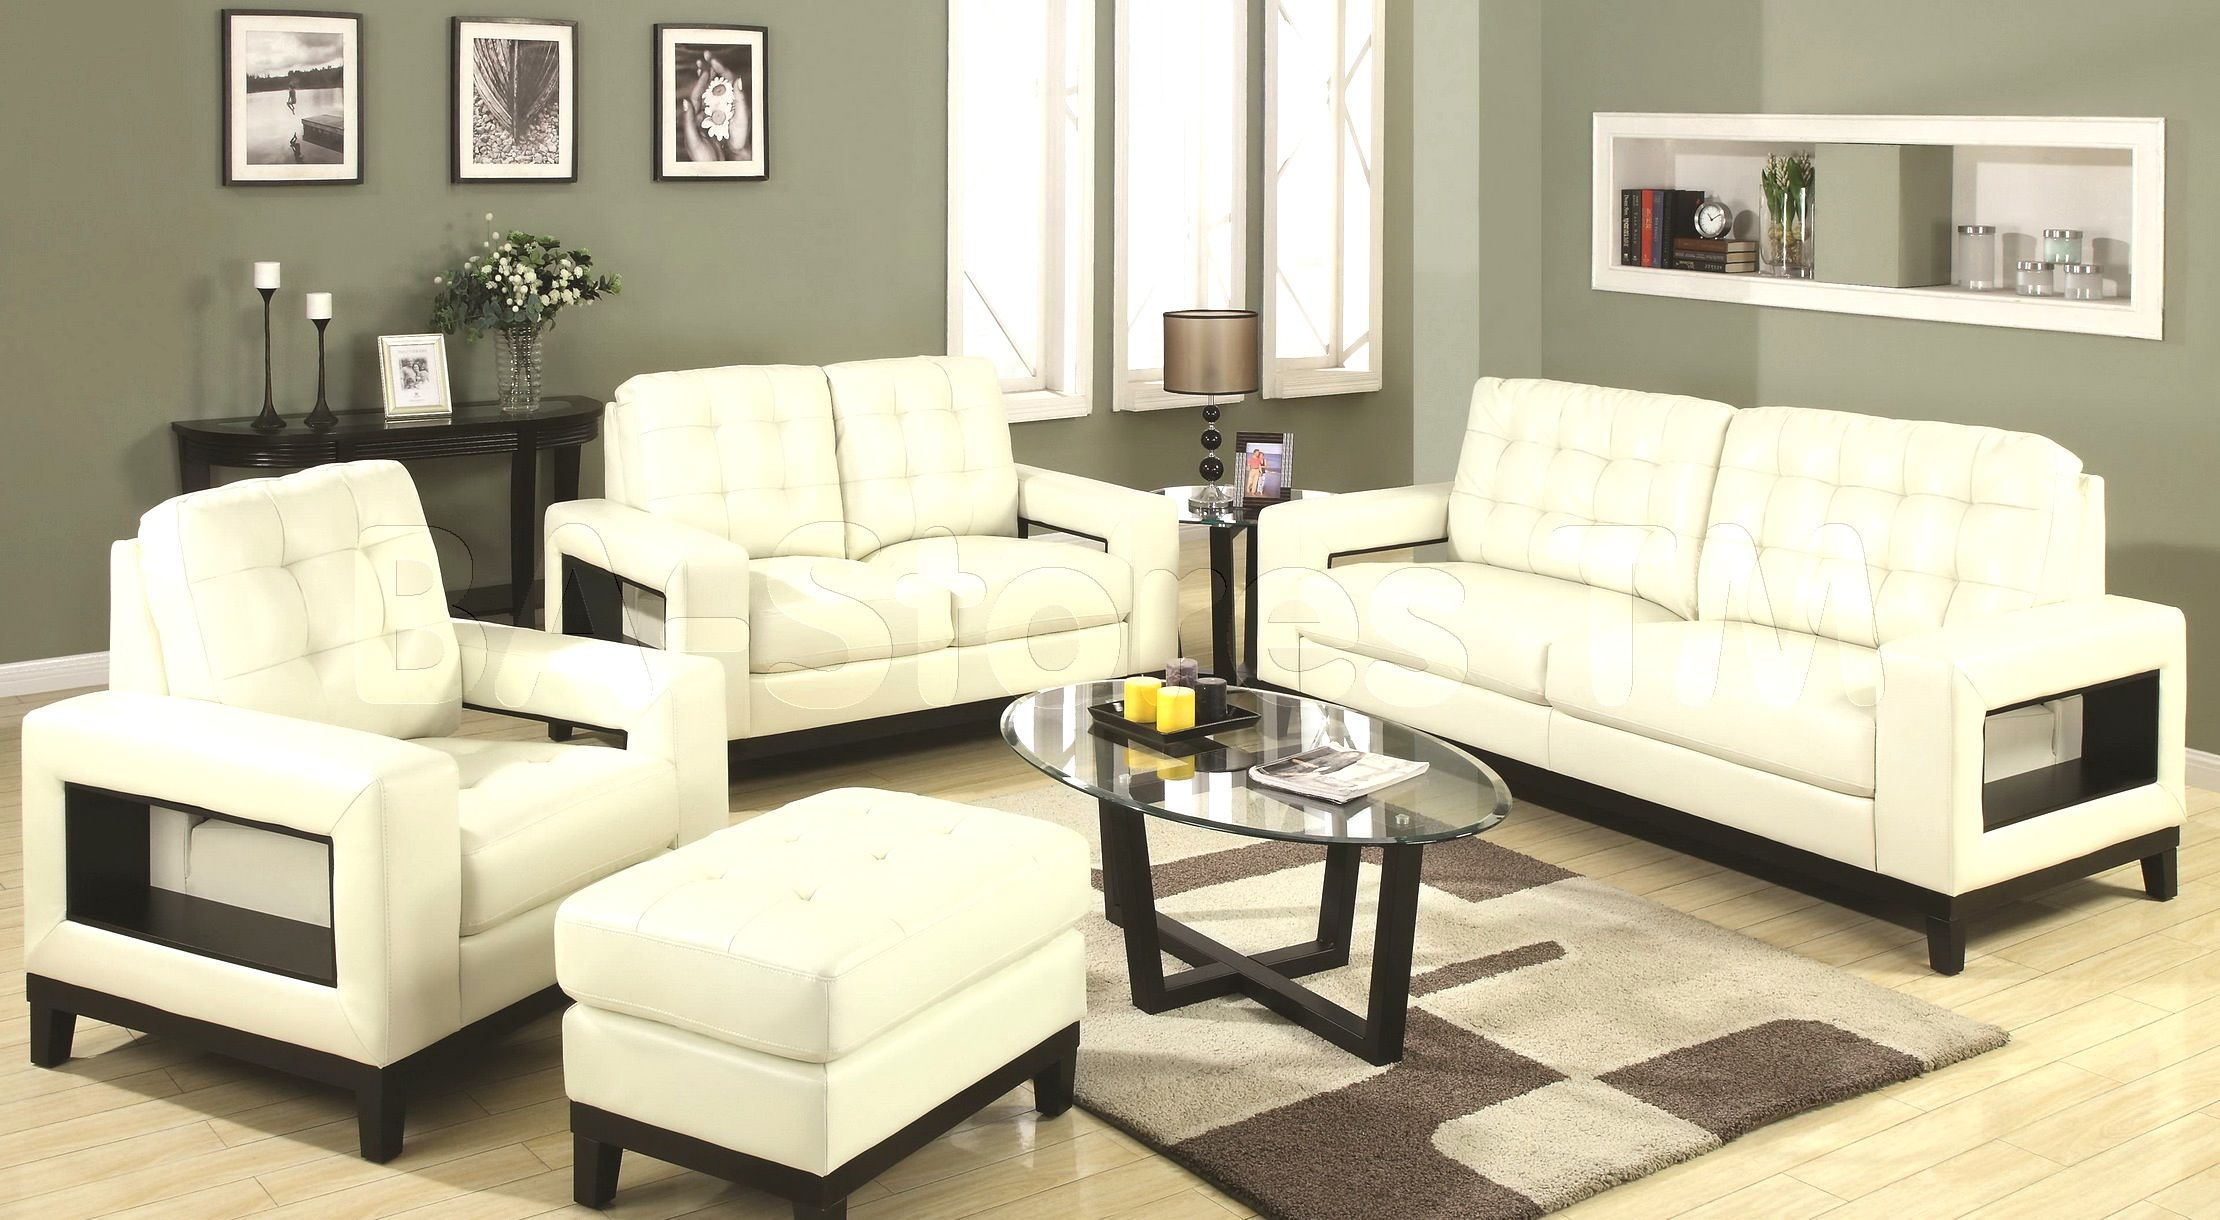 elegant sofa set sale photograph-Best Of sofa Set Sale Architecture